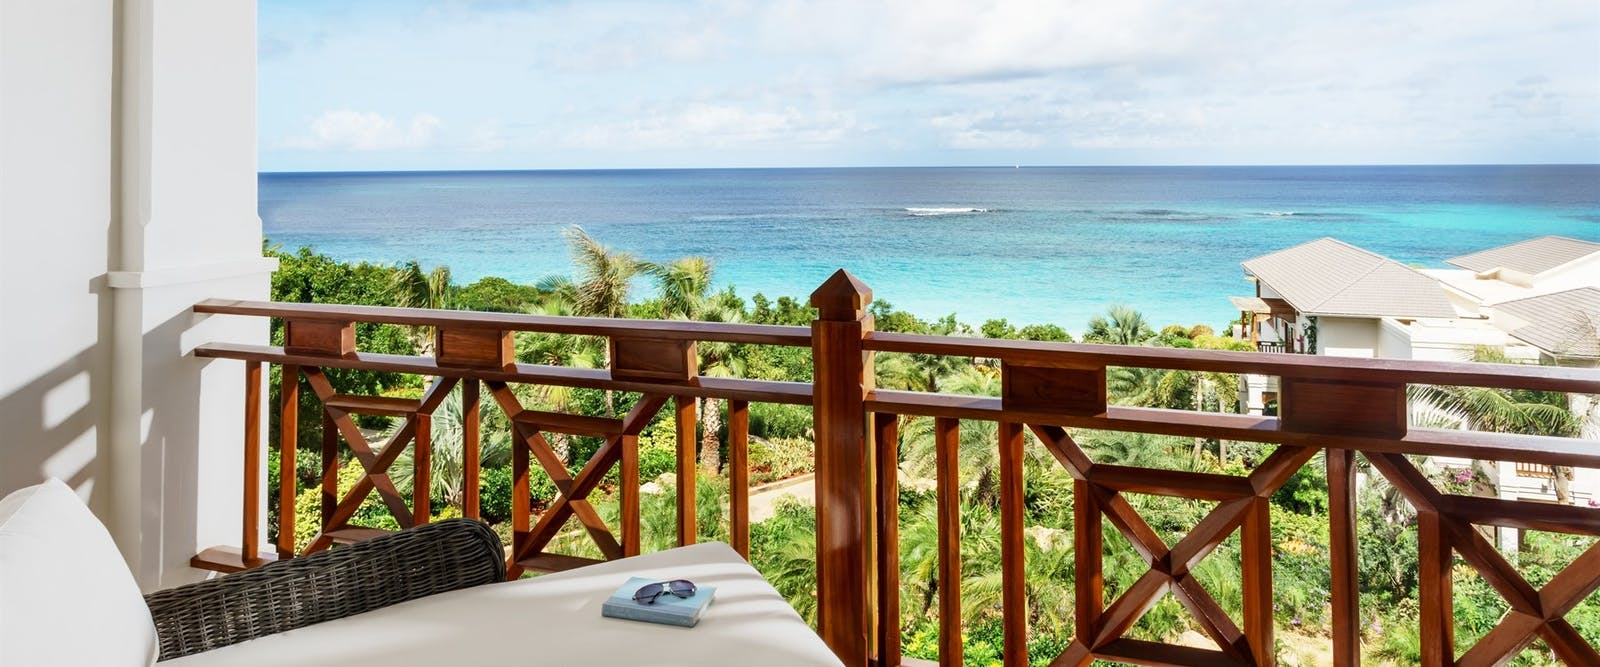 Balcony with Ocean View at Zemi Beach House, Anguilla